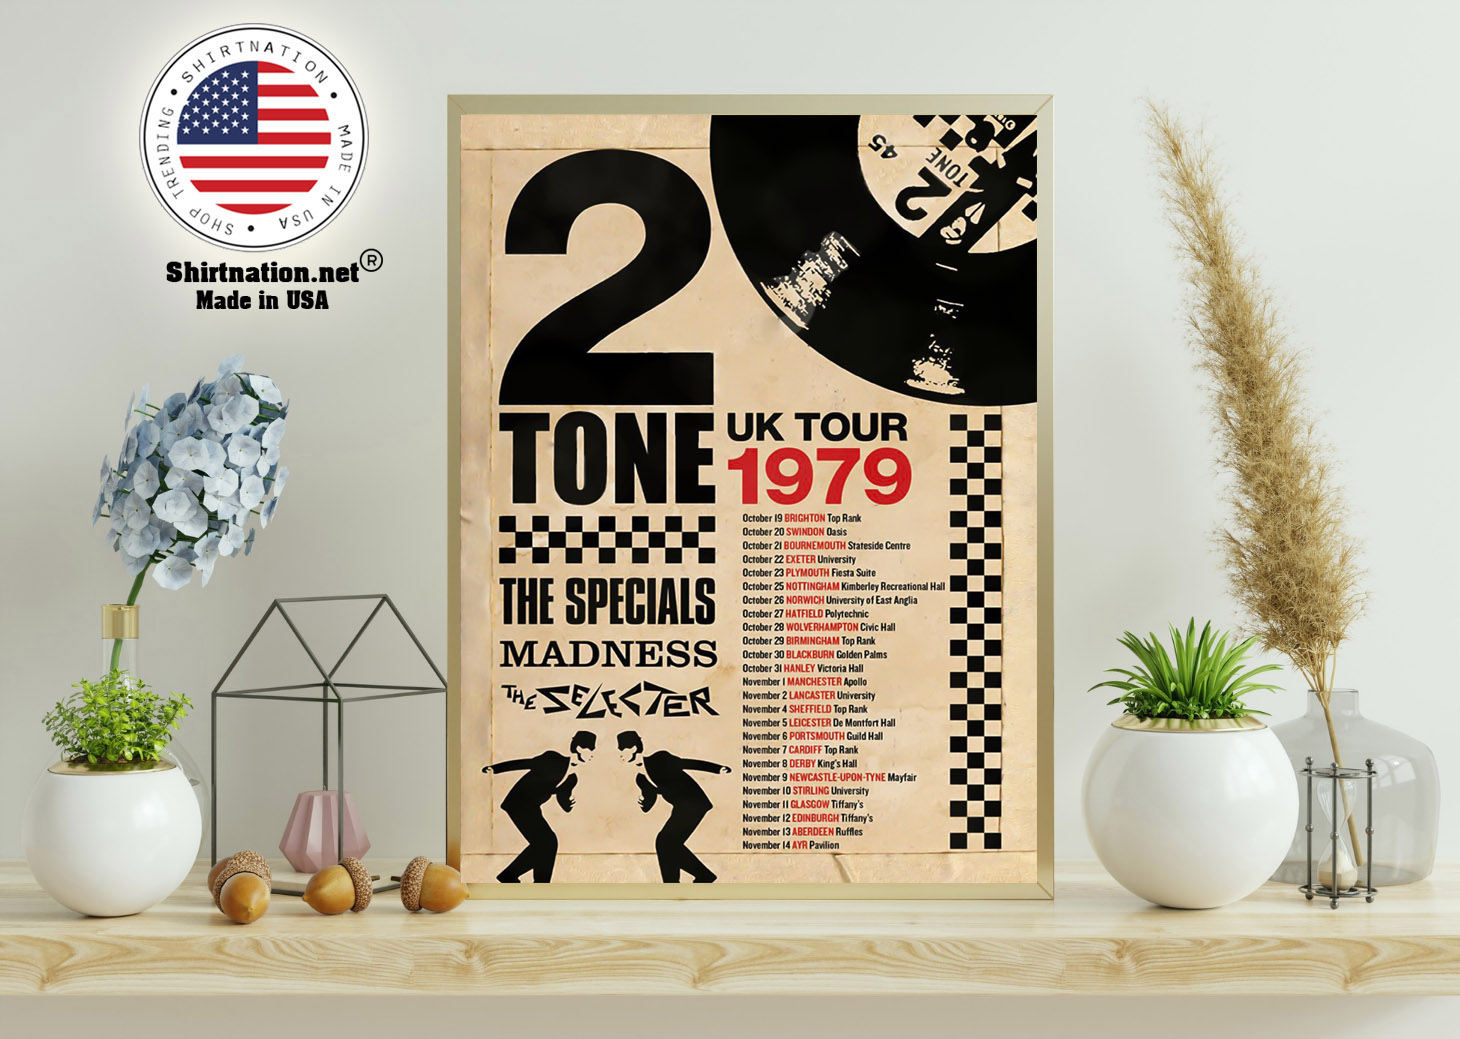 2 Tone UK tour 1979 the specials madness poster 11